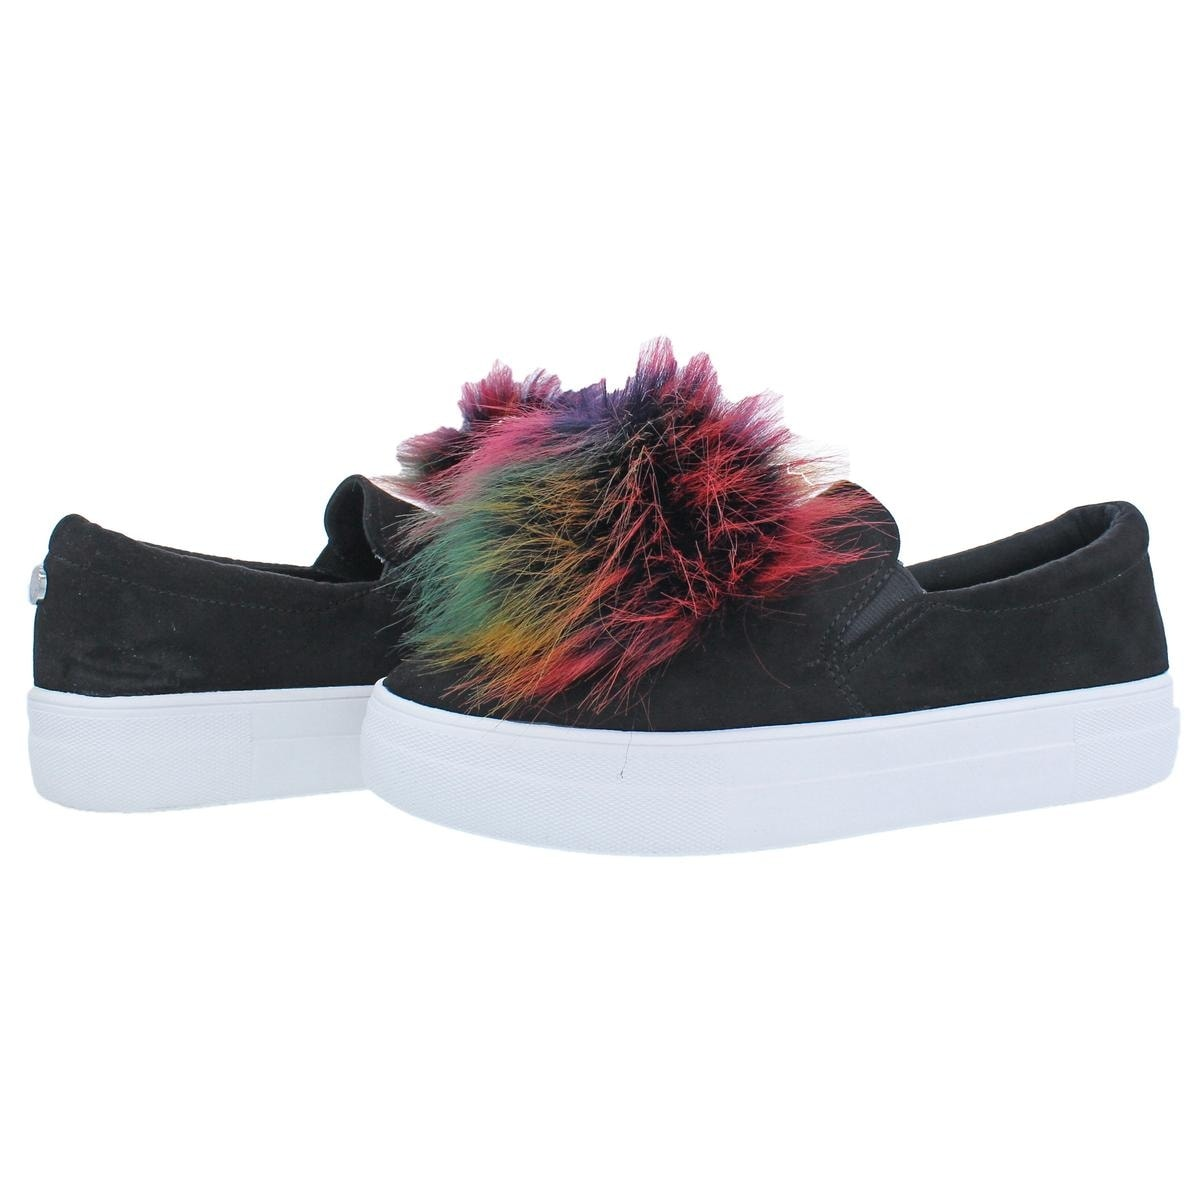 6ed8915bf96 Steve Madden Womens Great Fashion Sneakers Faux Fur Pom Pom